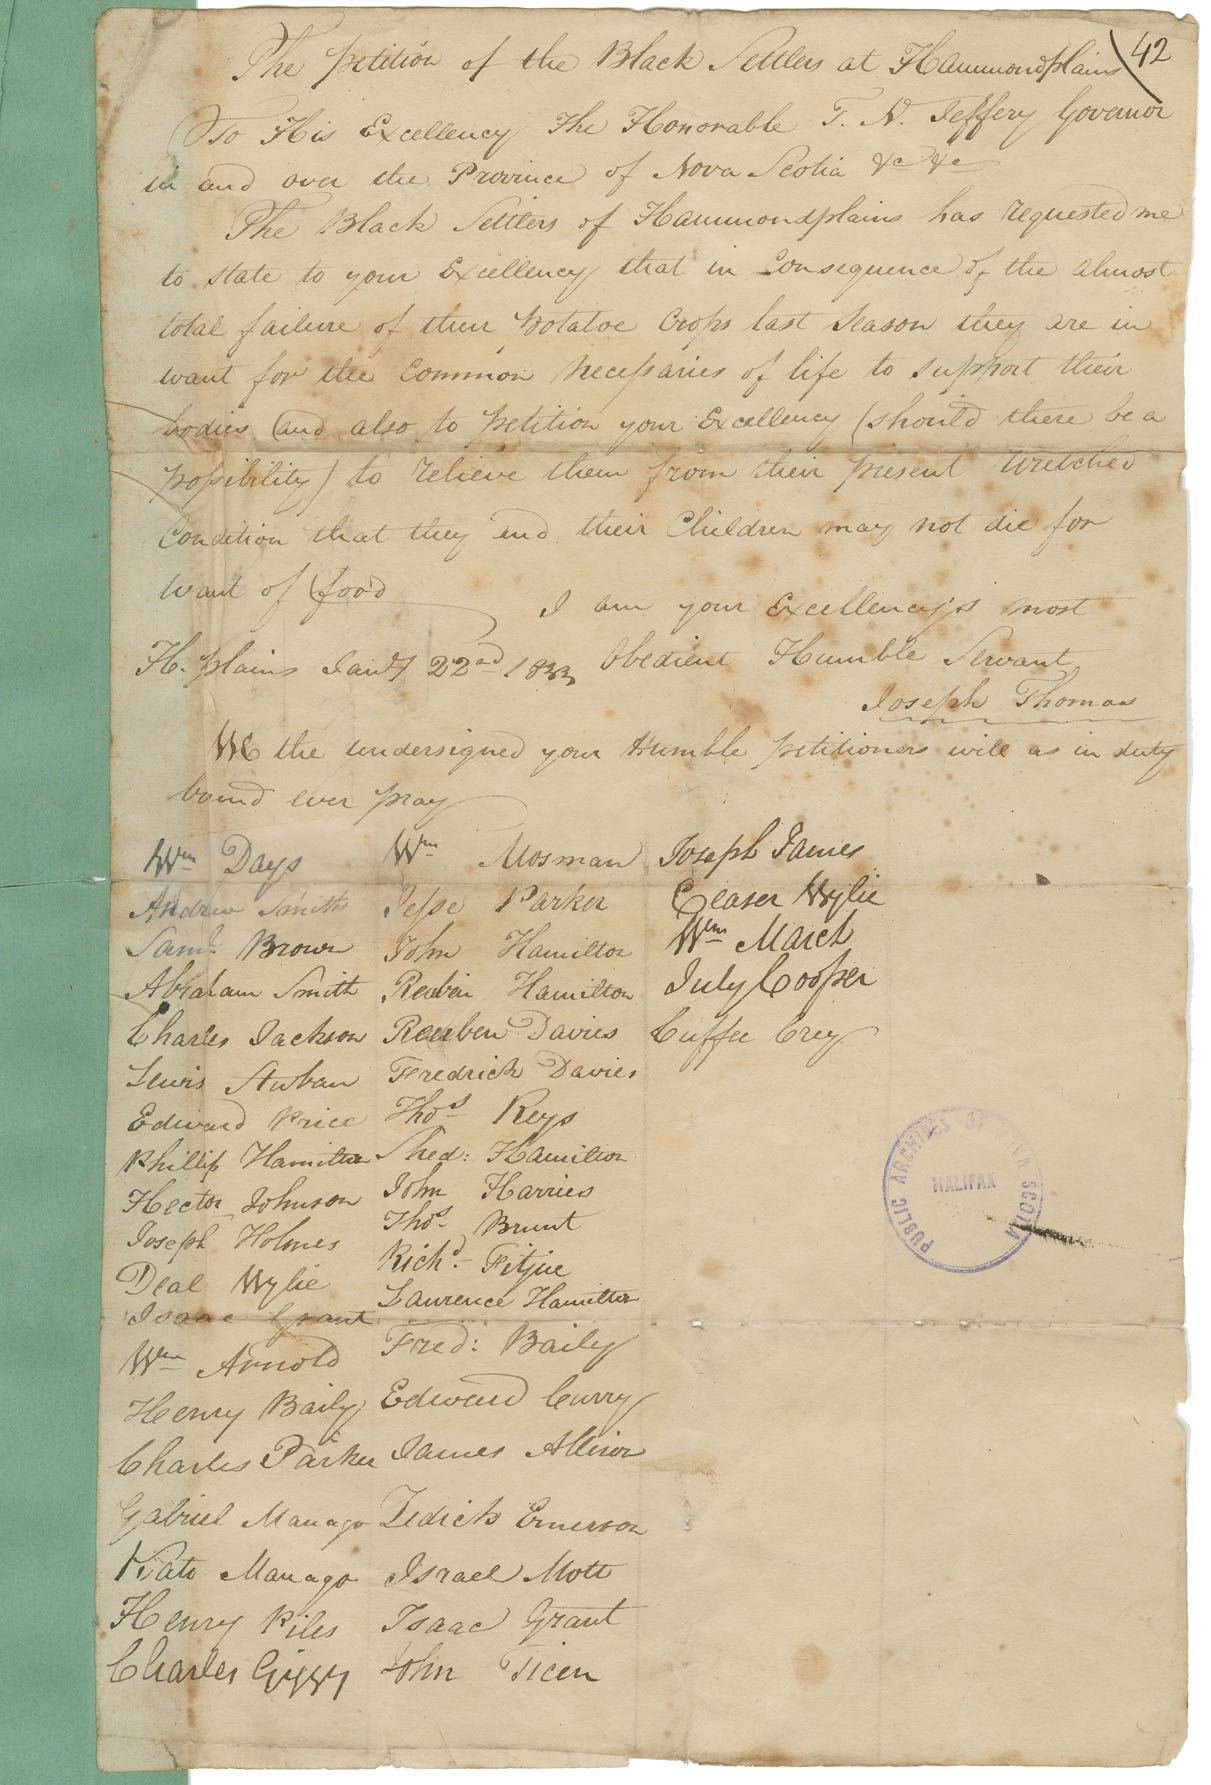 african-heritage : Petition from Black settlers at Hammonds Plains to Thomas N. Jeffery, Collector of Customs, praying for relief, as they are in a state of de